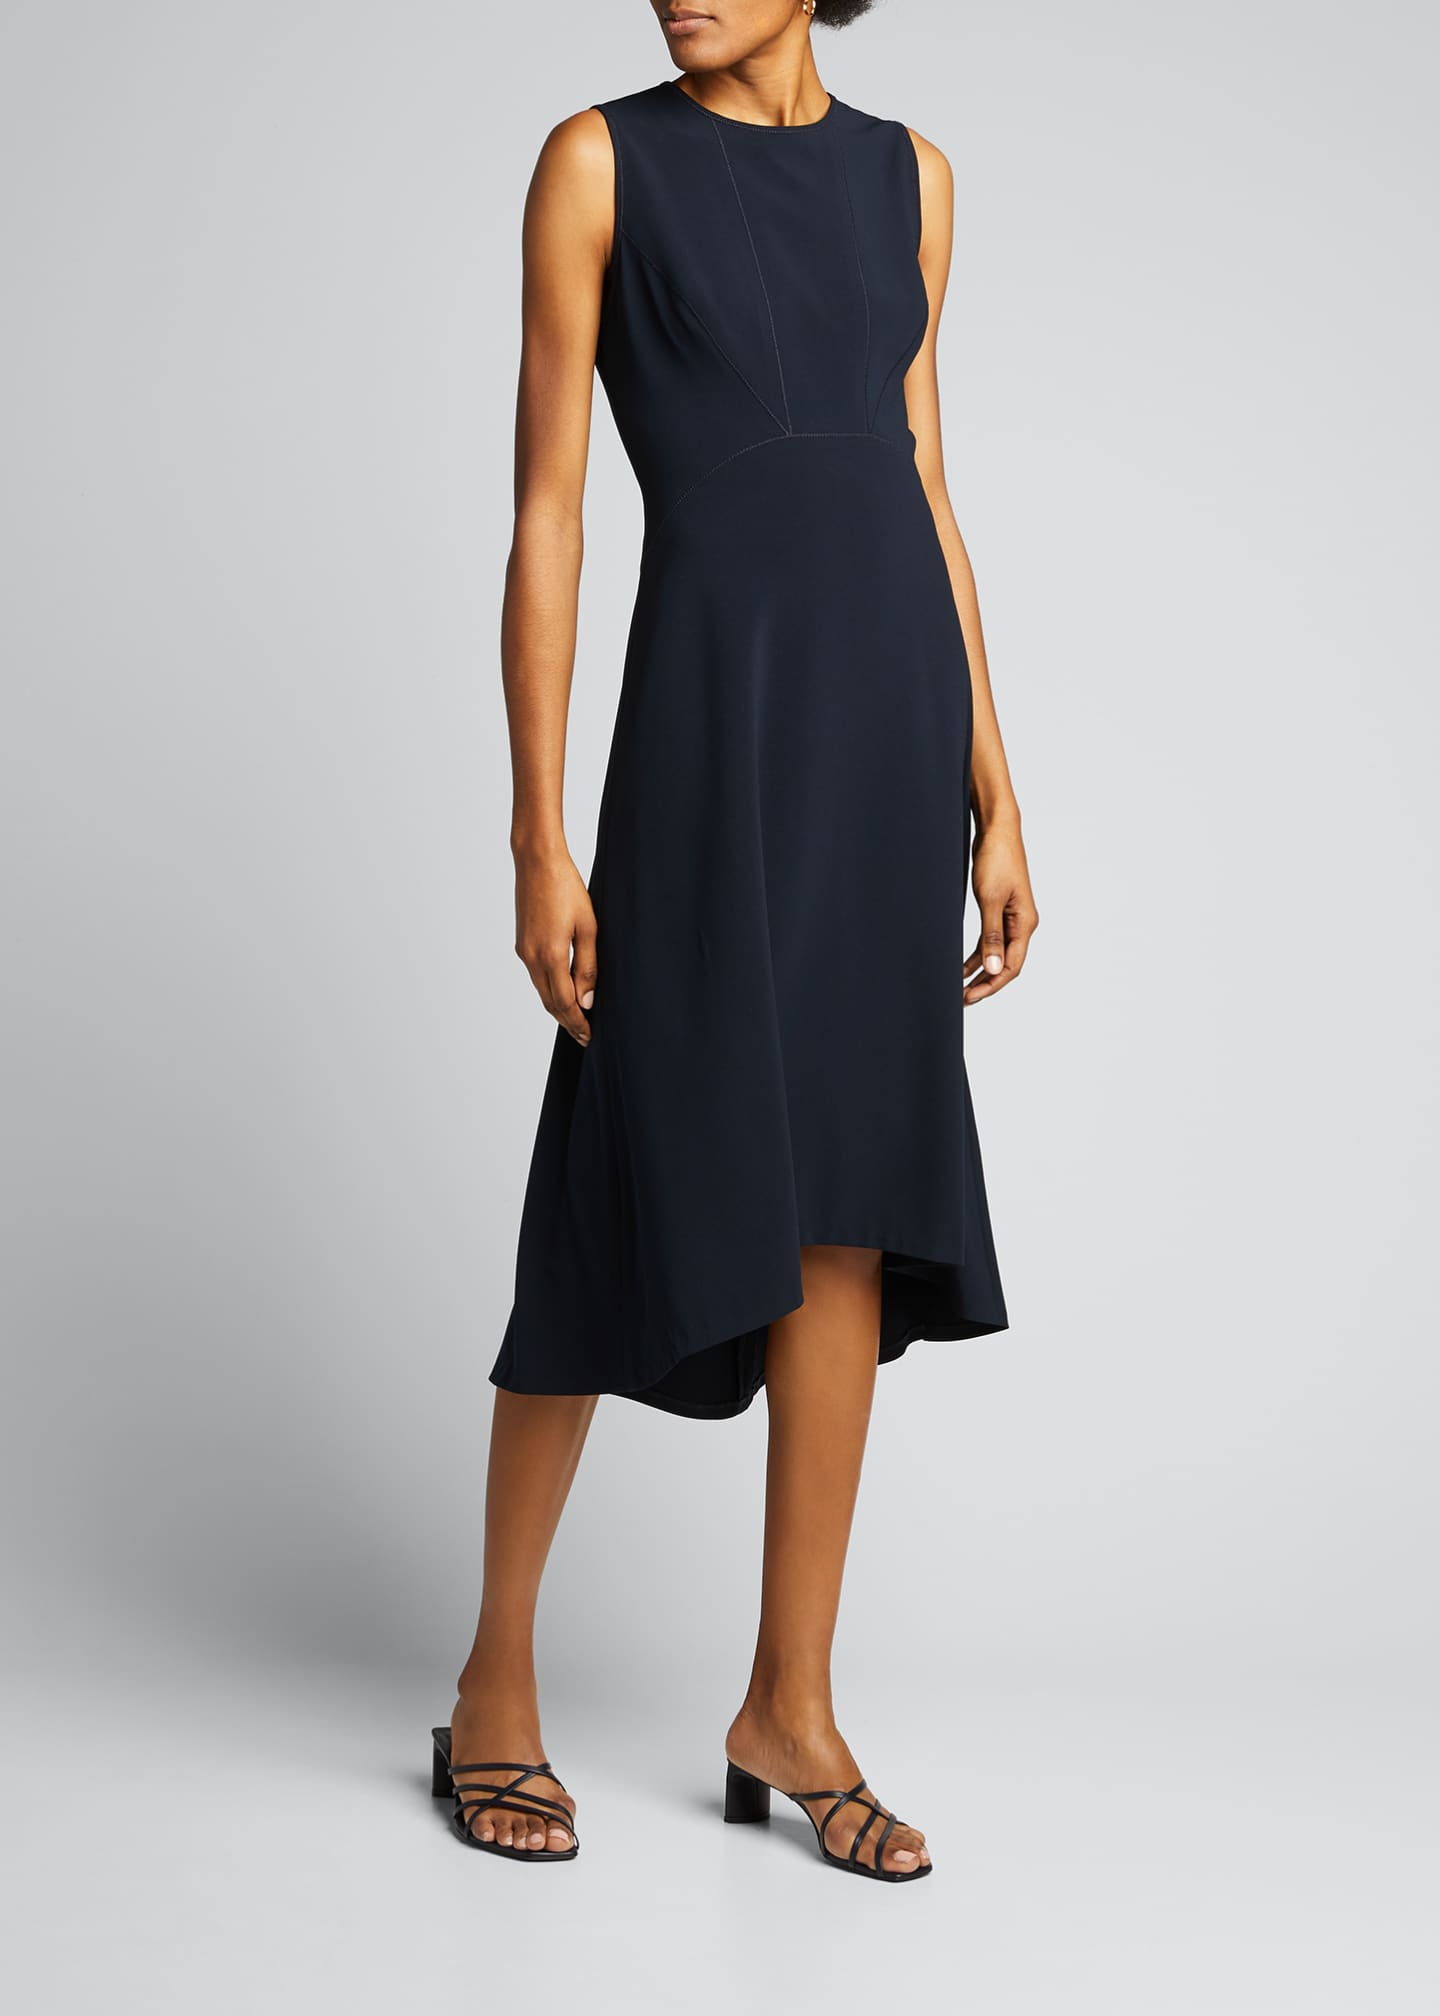 Image 3 of 5: Leighton Sleeveless High-Low Crepe Dress